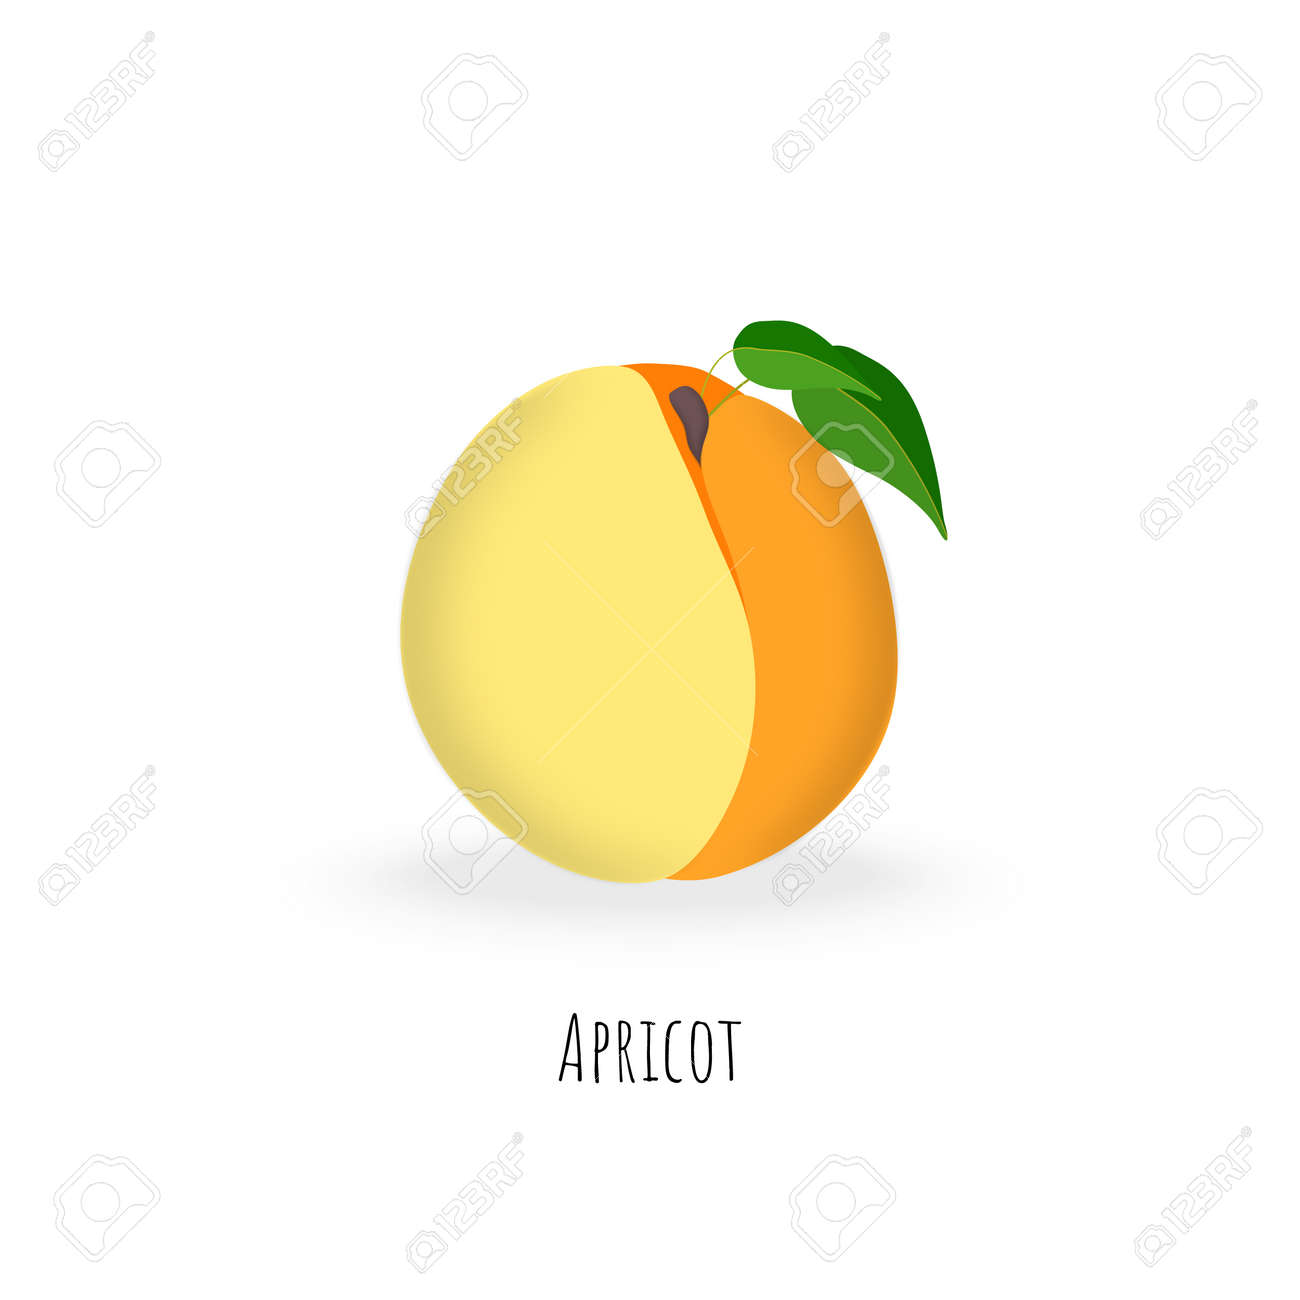 Single apricot fruit isolated on white background. Vibrant colored plump apricot with green leaves. Flat vector with shadows. - 168336291